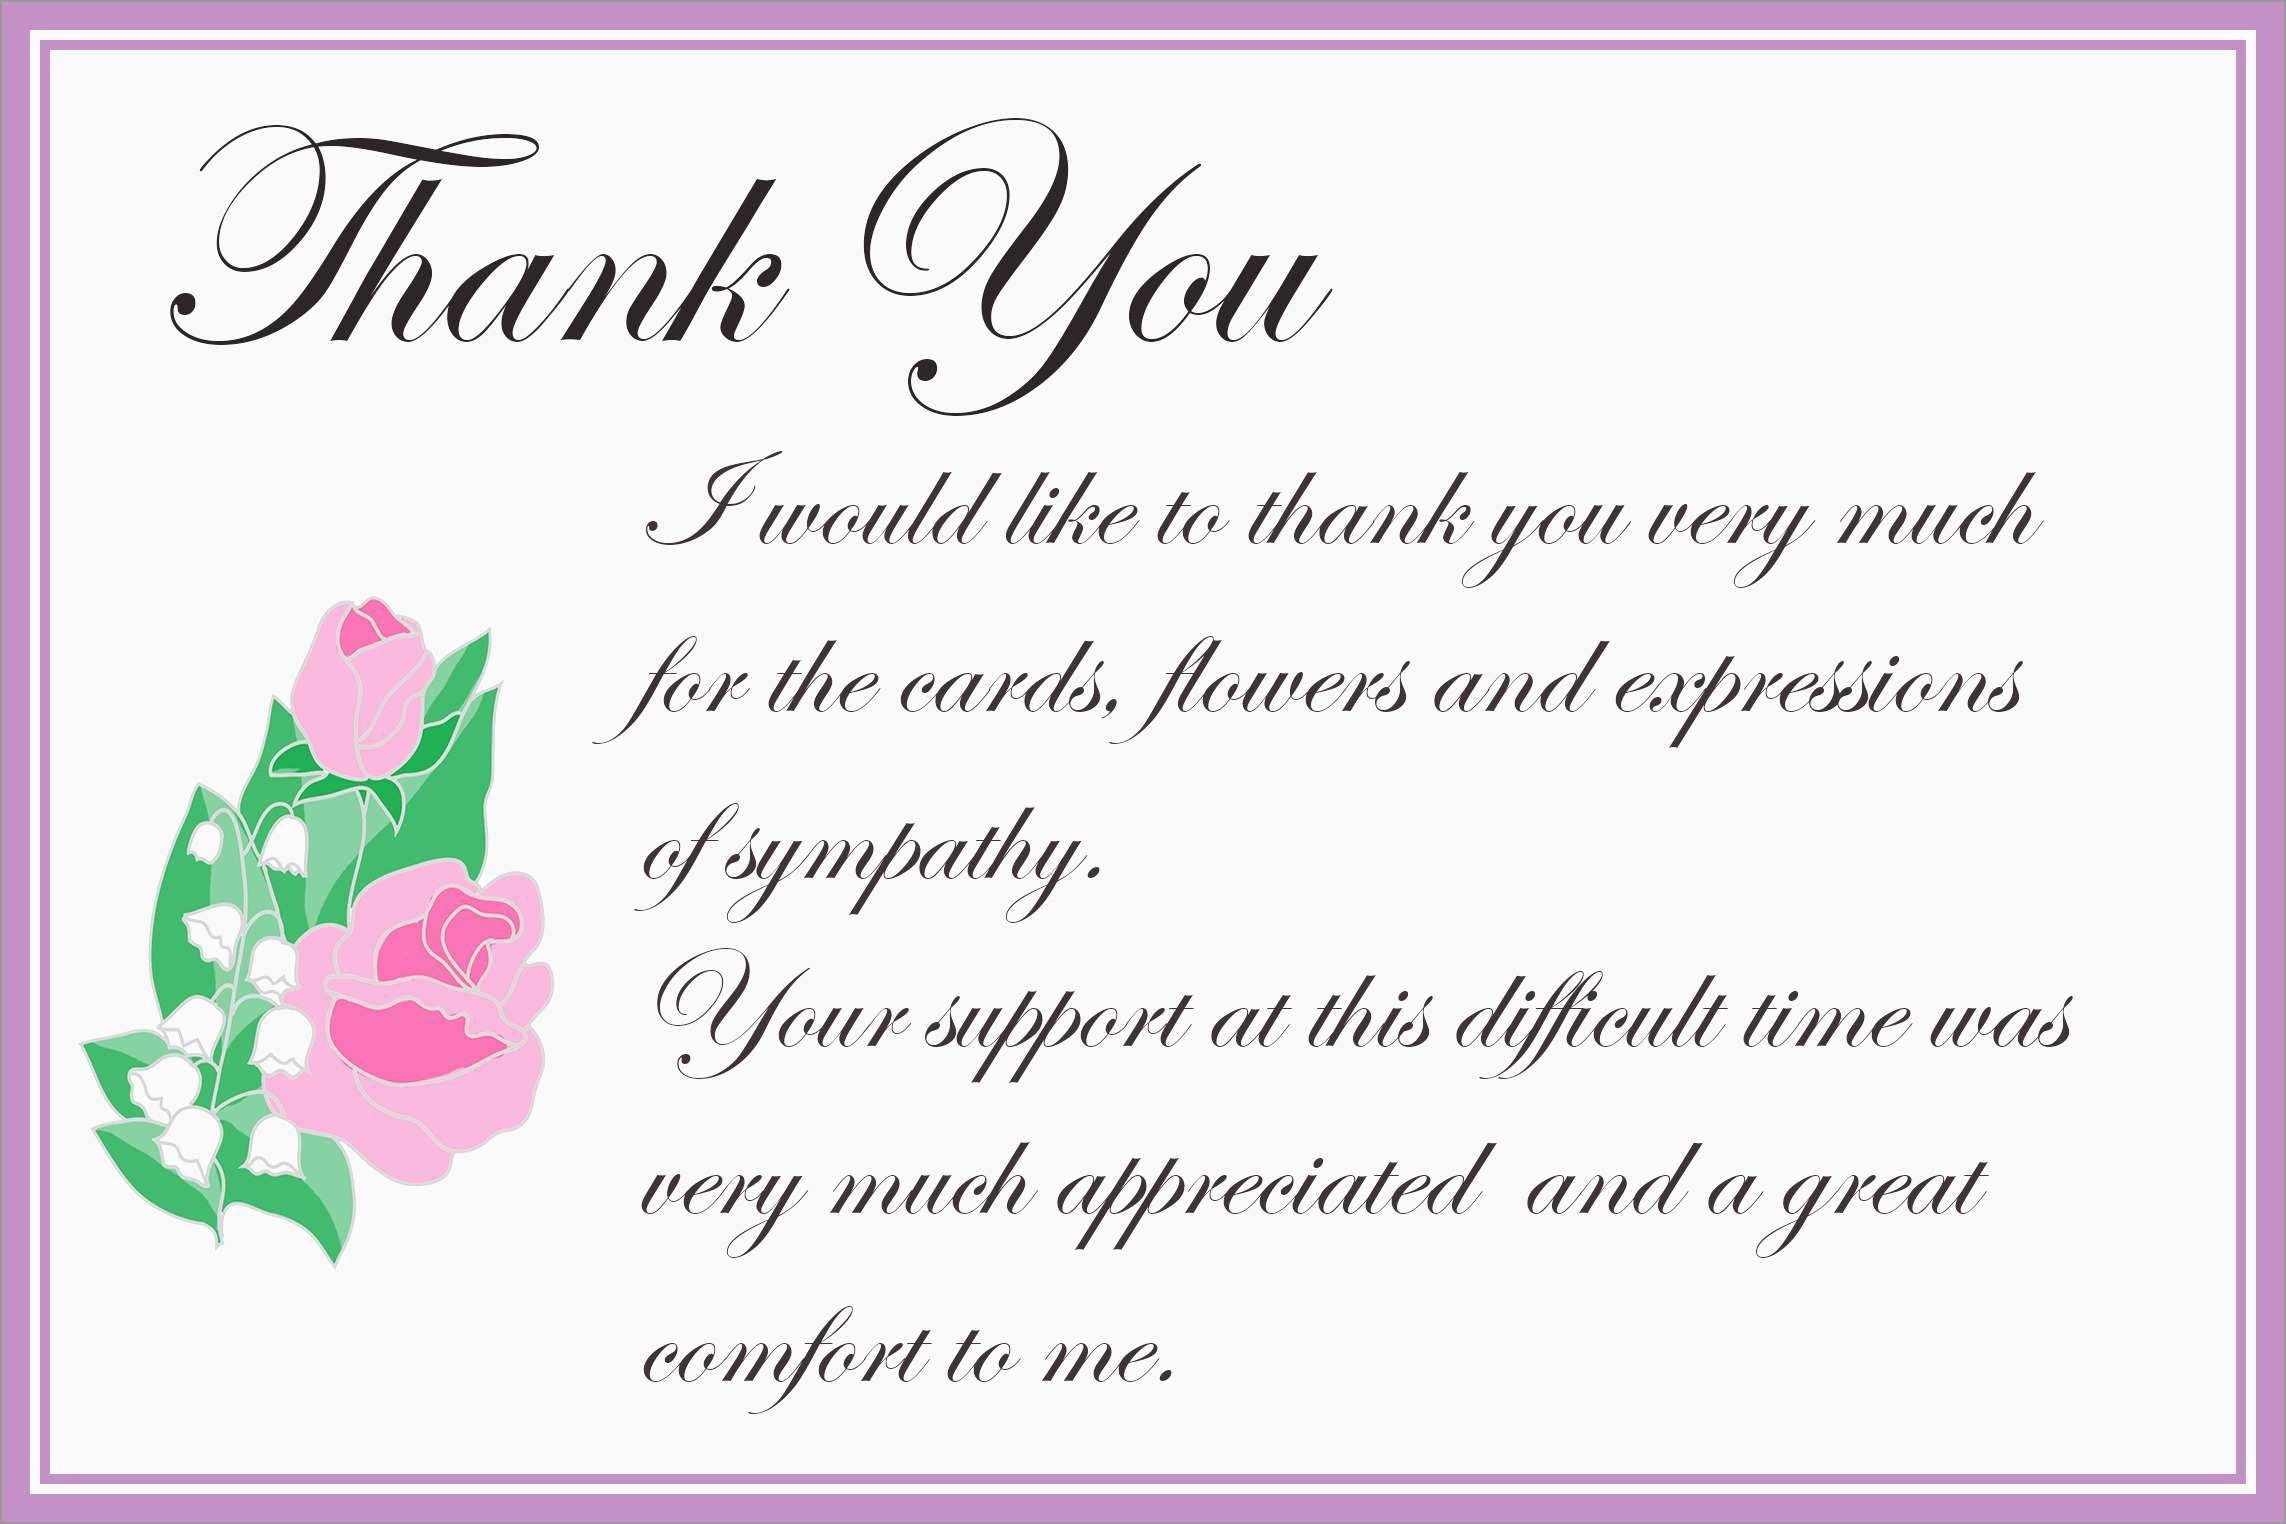 Beautiful Free Funeral Thank You Cards Templates   Best Of Template - Thank You Sympathy Cards Free Printable